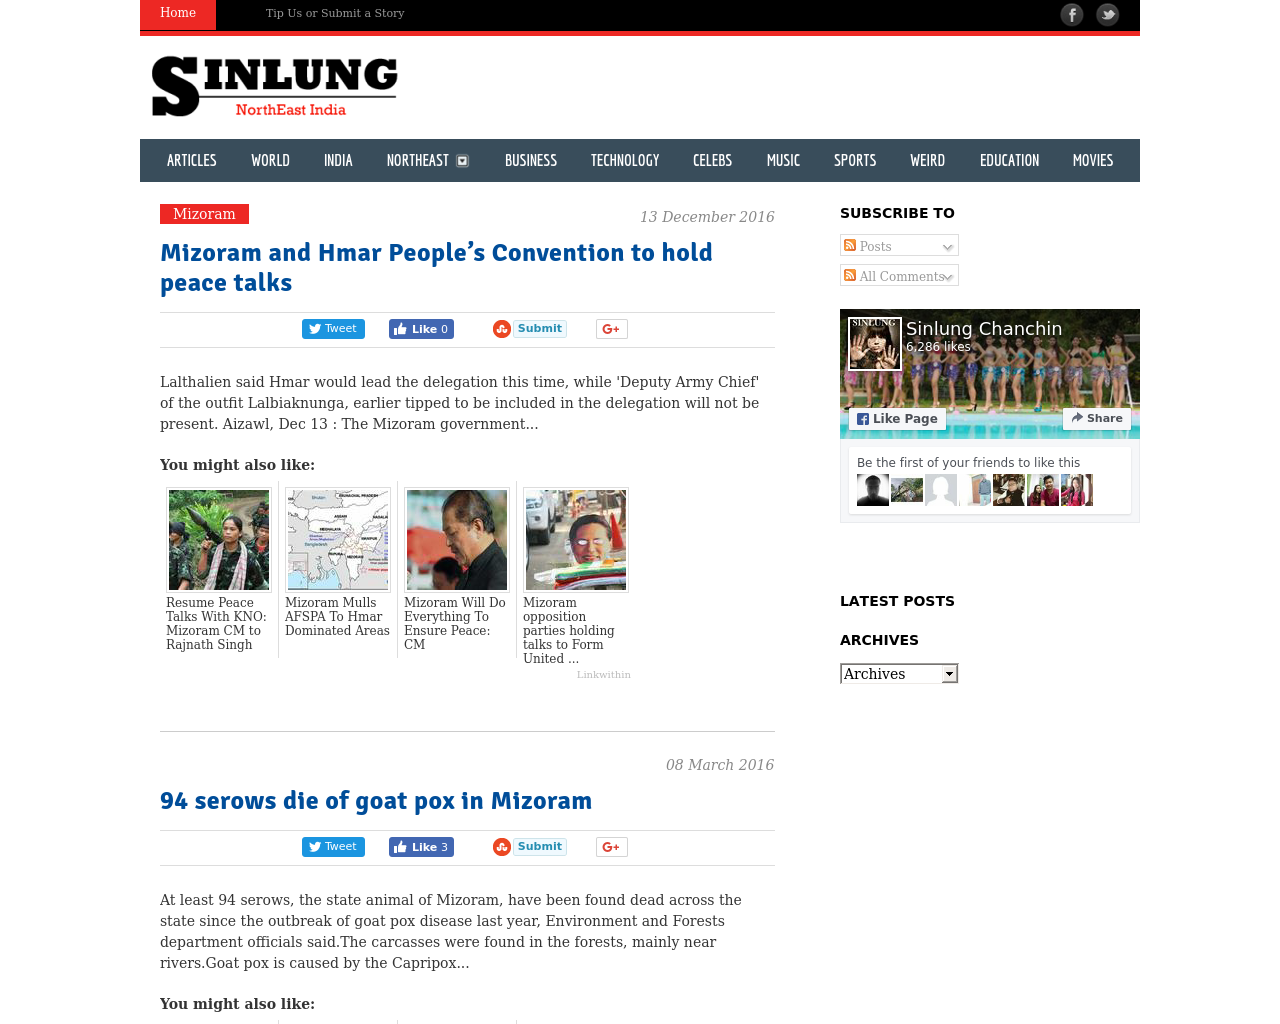 Sinlung-Northeast-India-Advertising-Reviews-Pricing